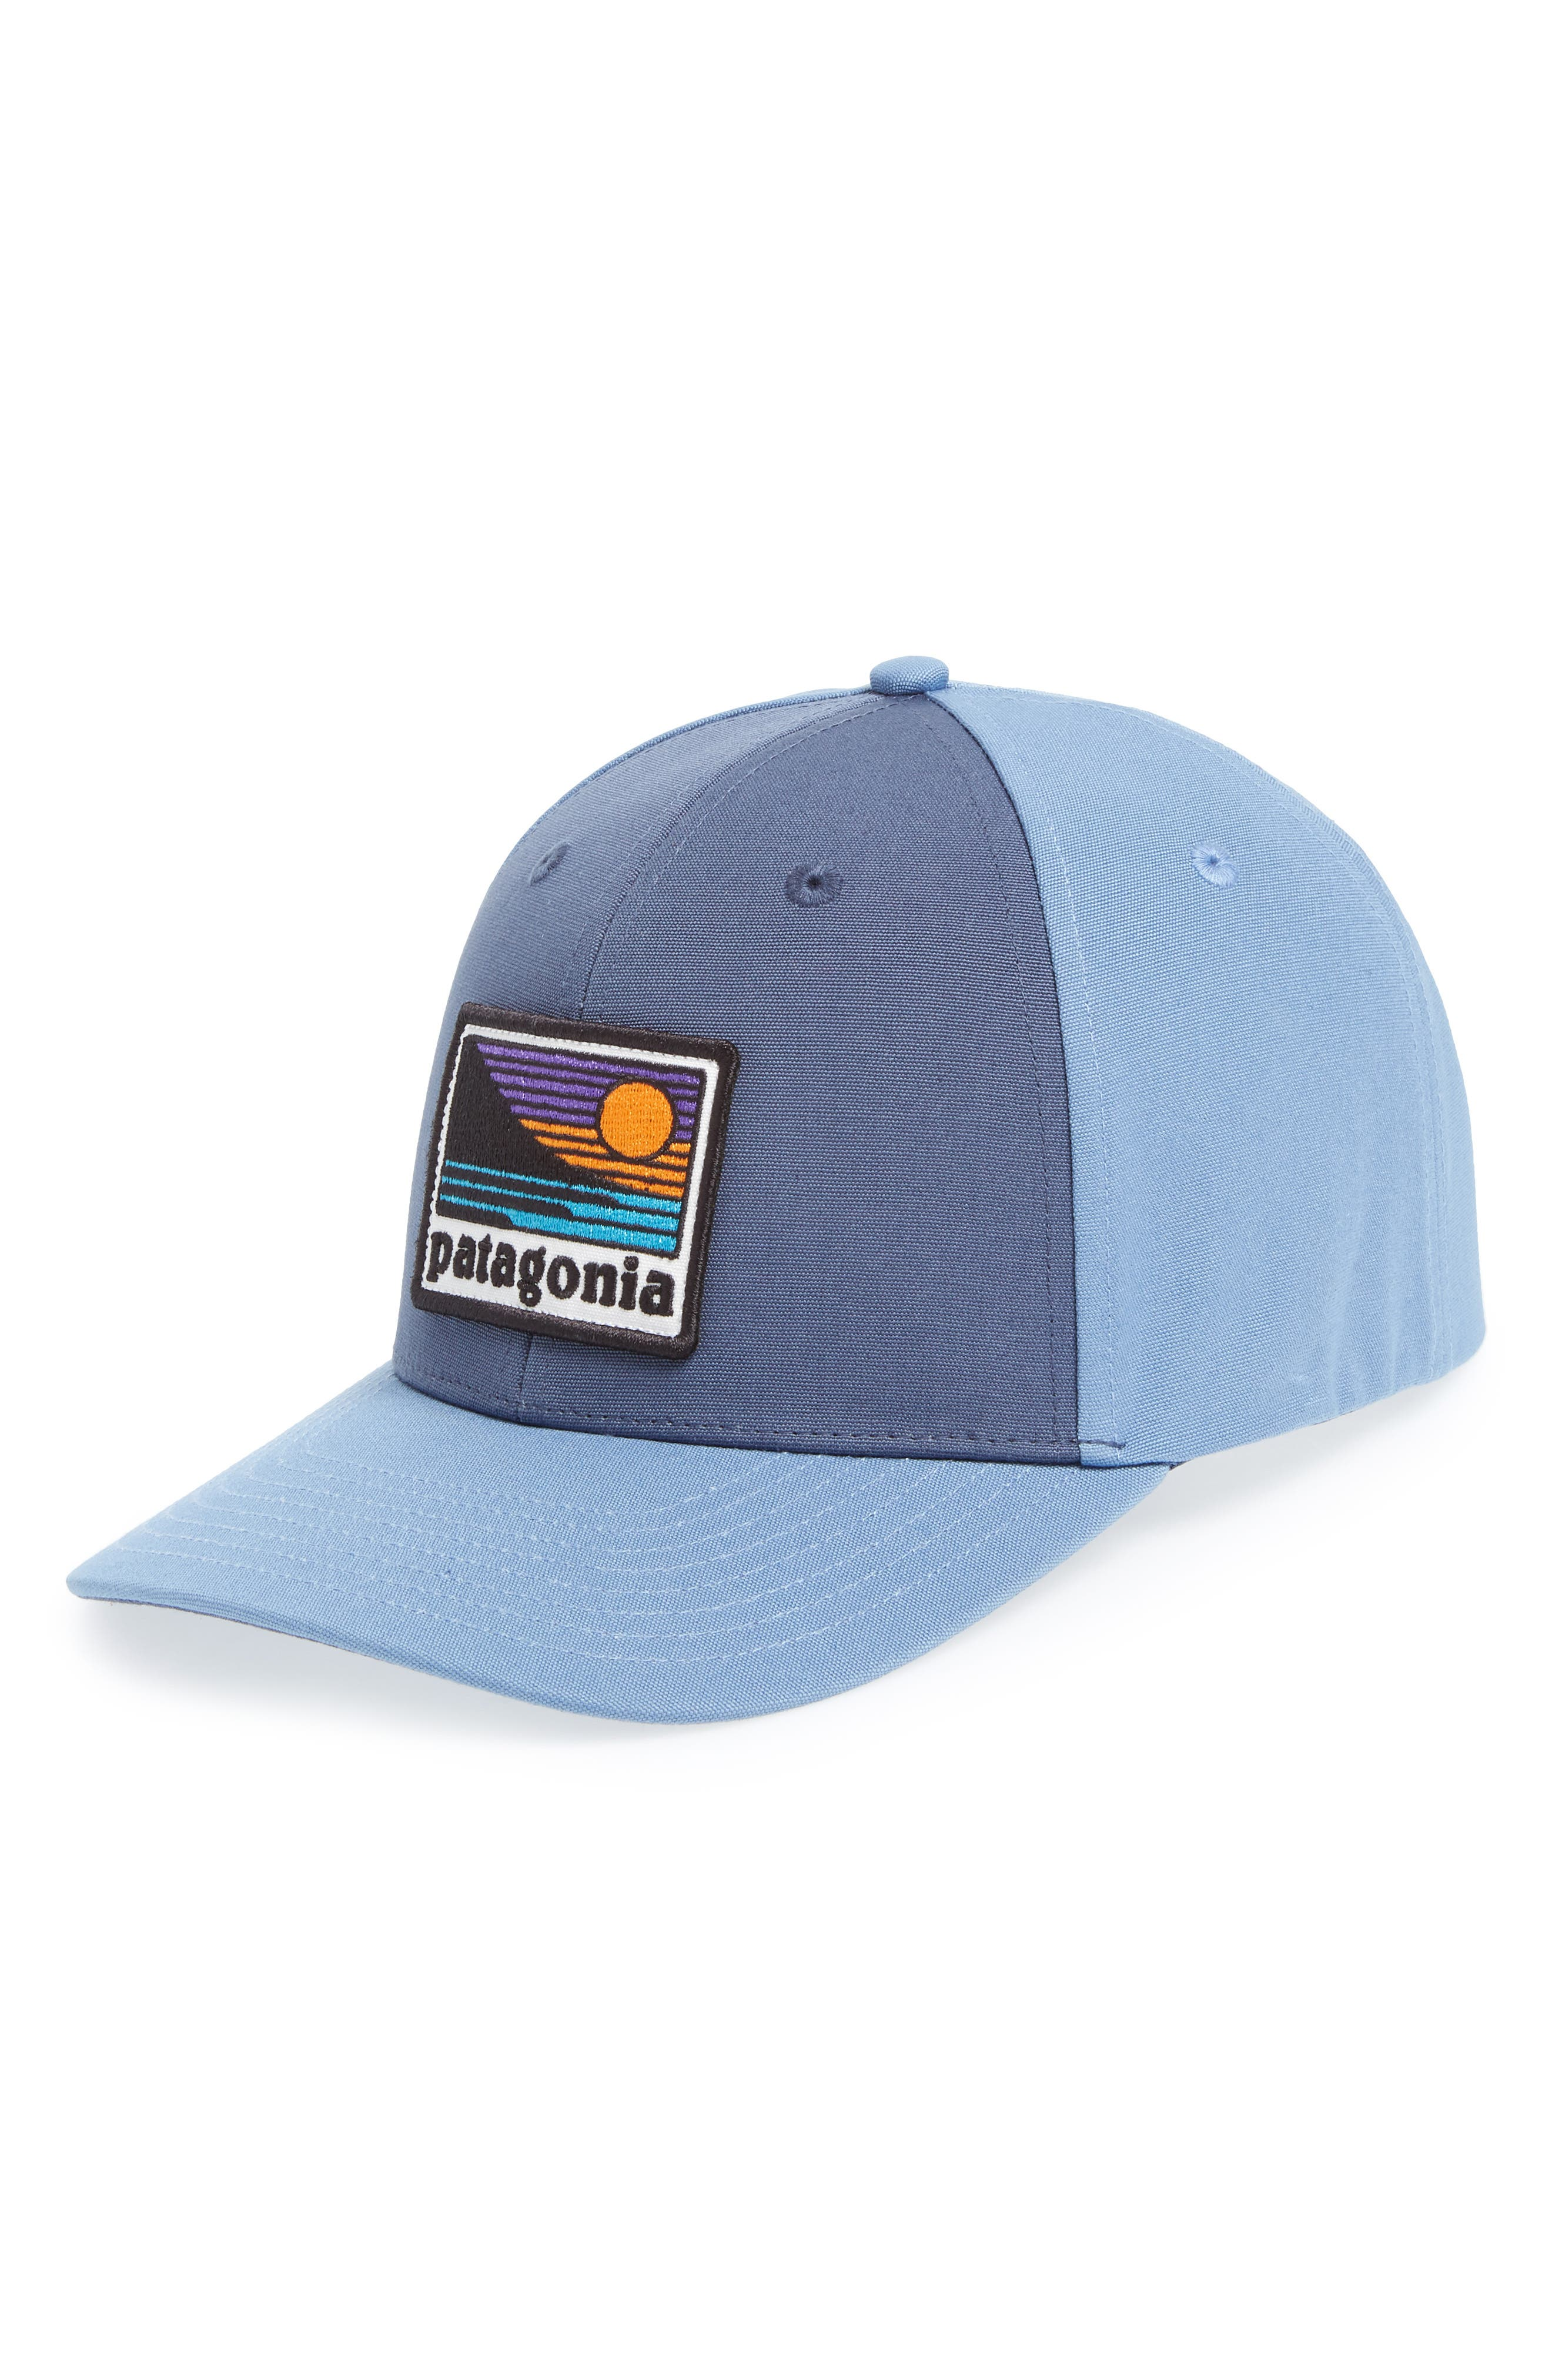 Up & Out Roger That Trucker Cap,                         Main,                         color, Dolomite Blue